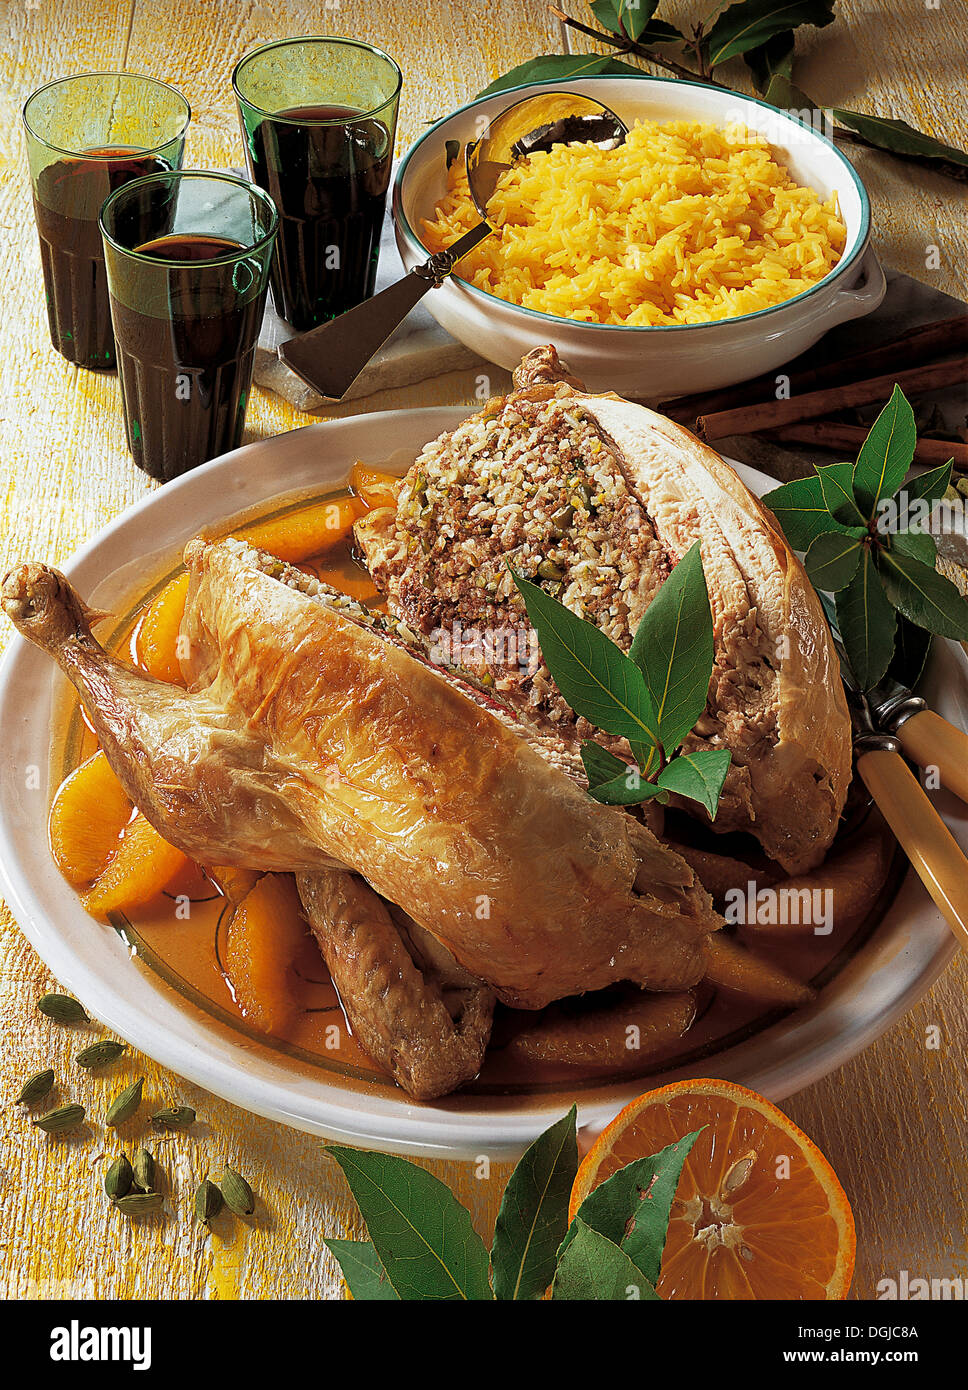 Egyptian chicken egypt recipe available for a fee stock photo egyptian chicken egypt recipe available for a fee forumfinder Images